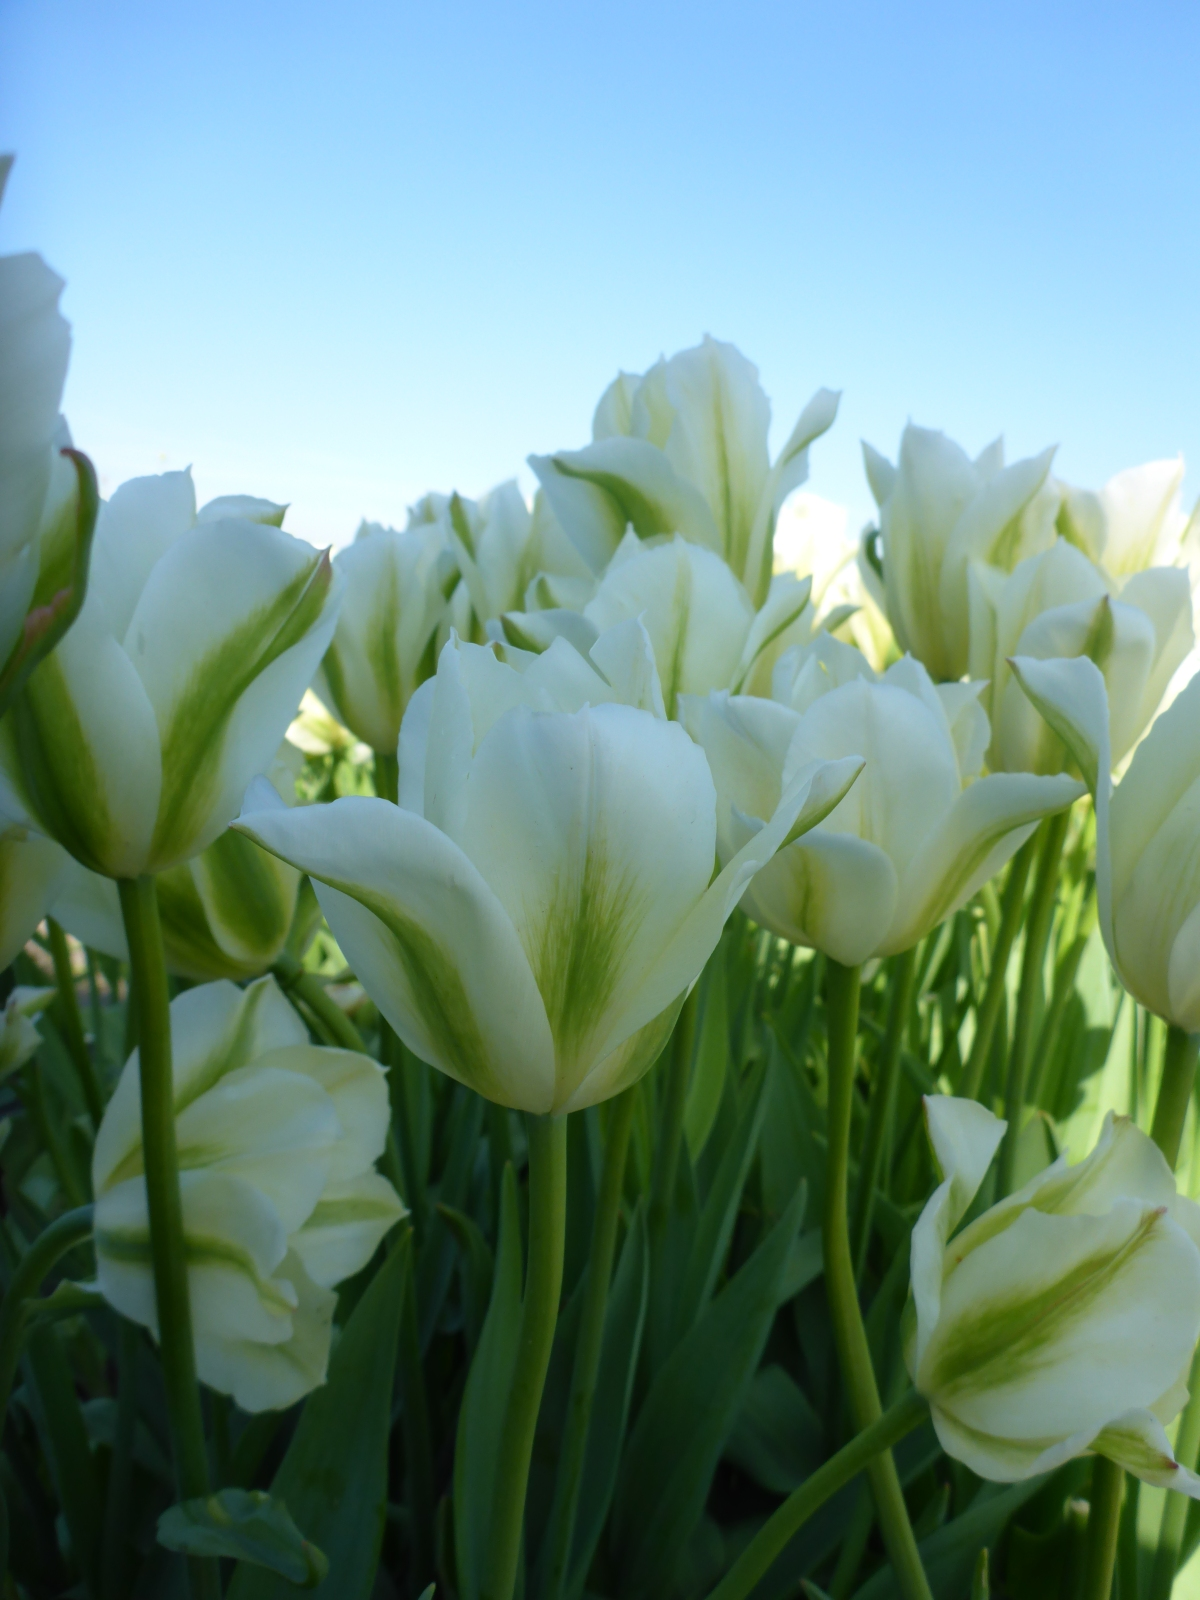 Tulips White and Green